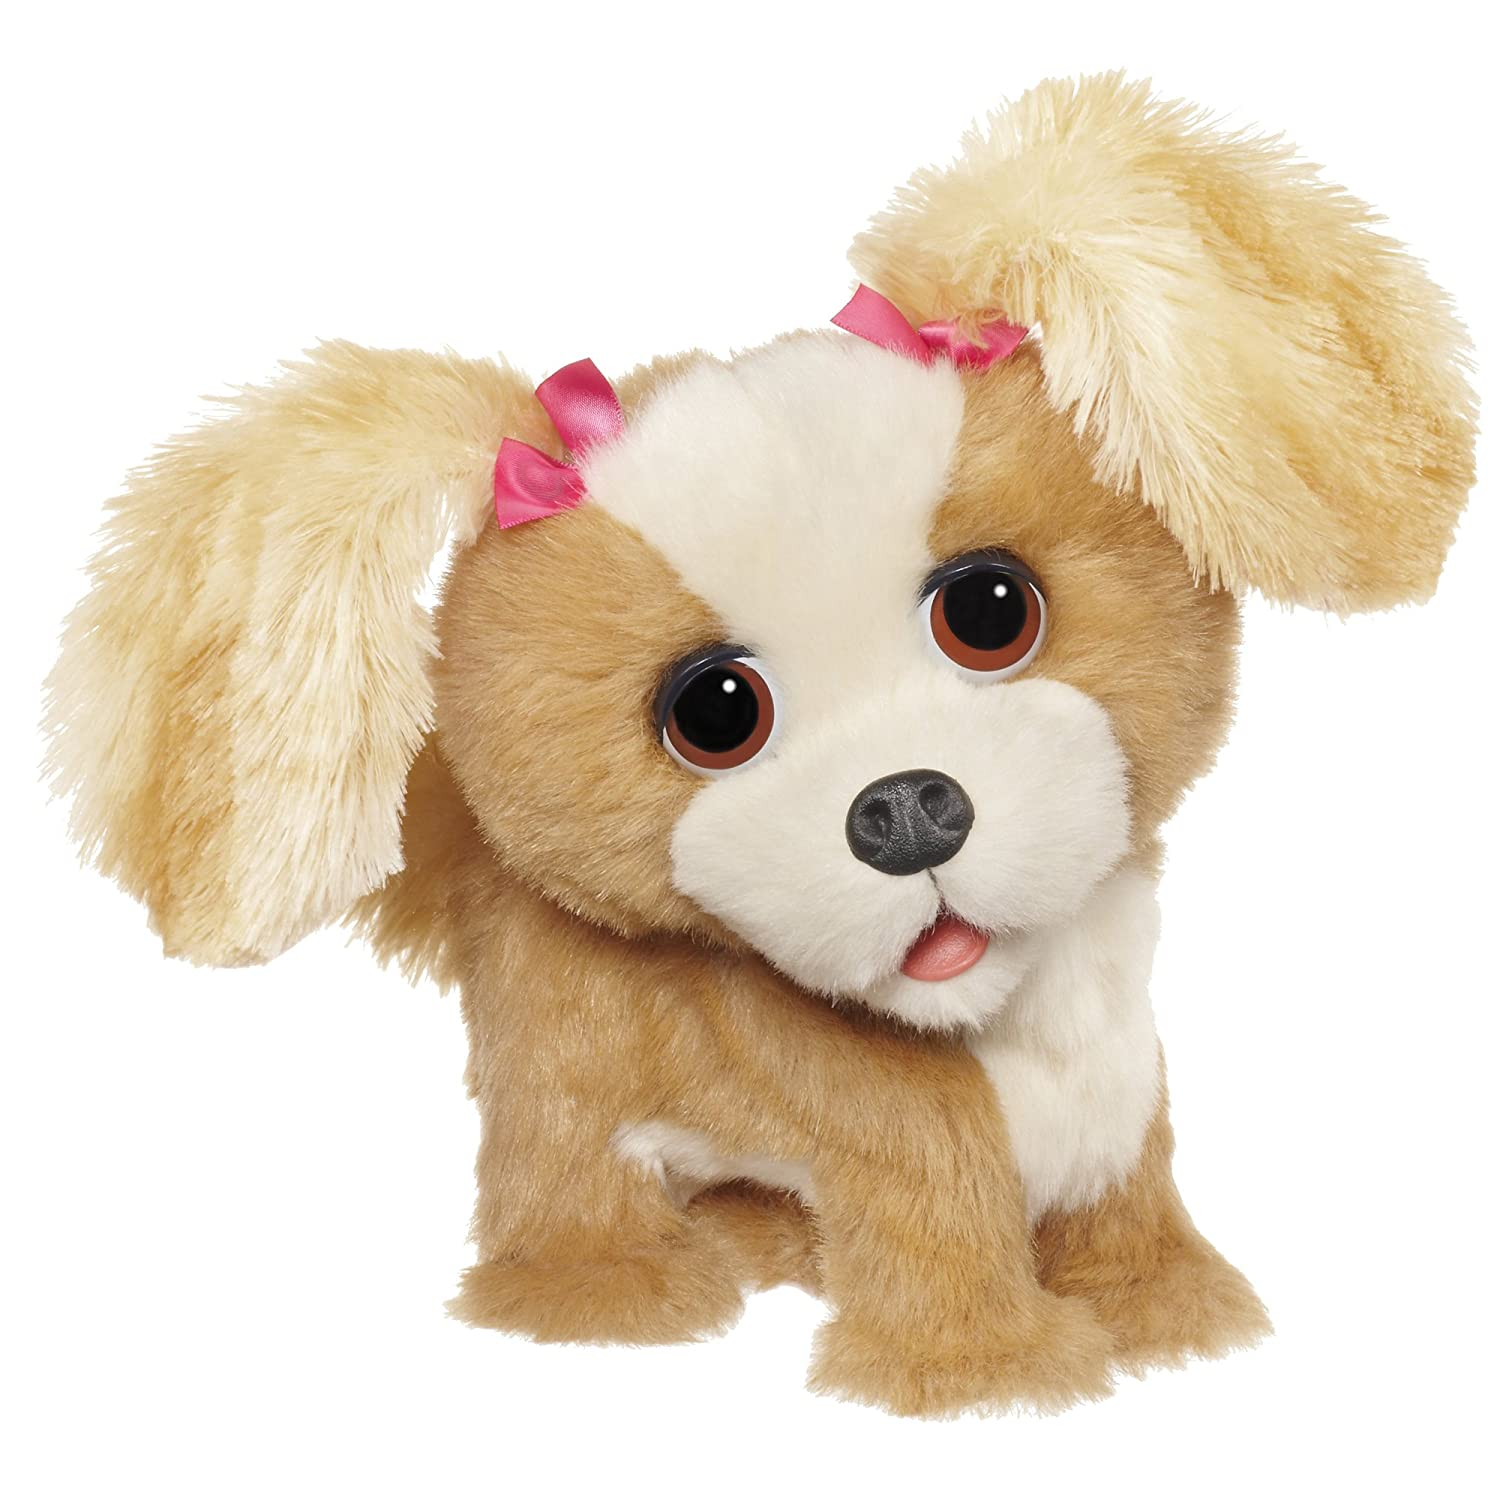 Top Furreal Friends Toys : Puppy toys for kids fel